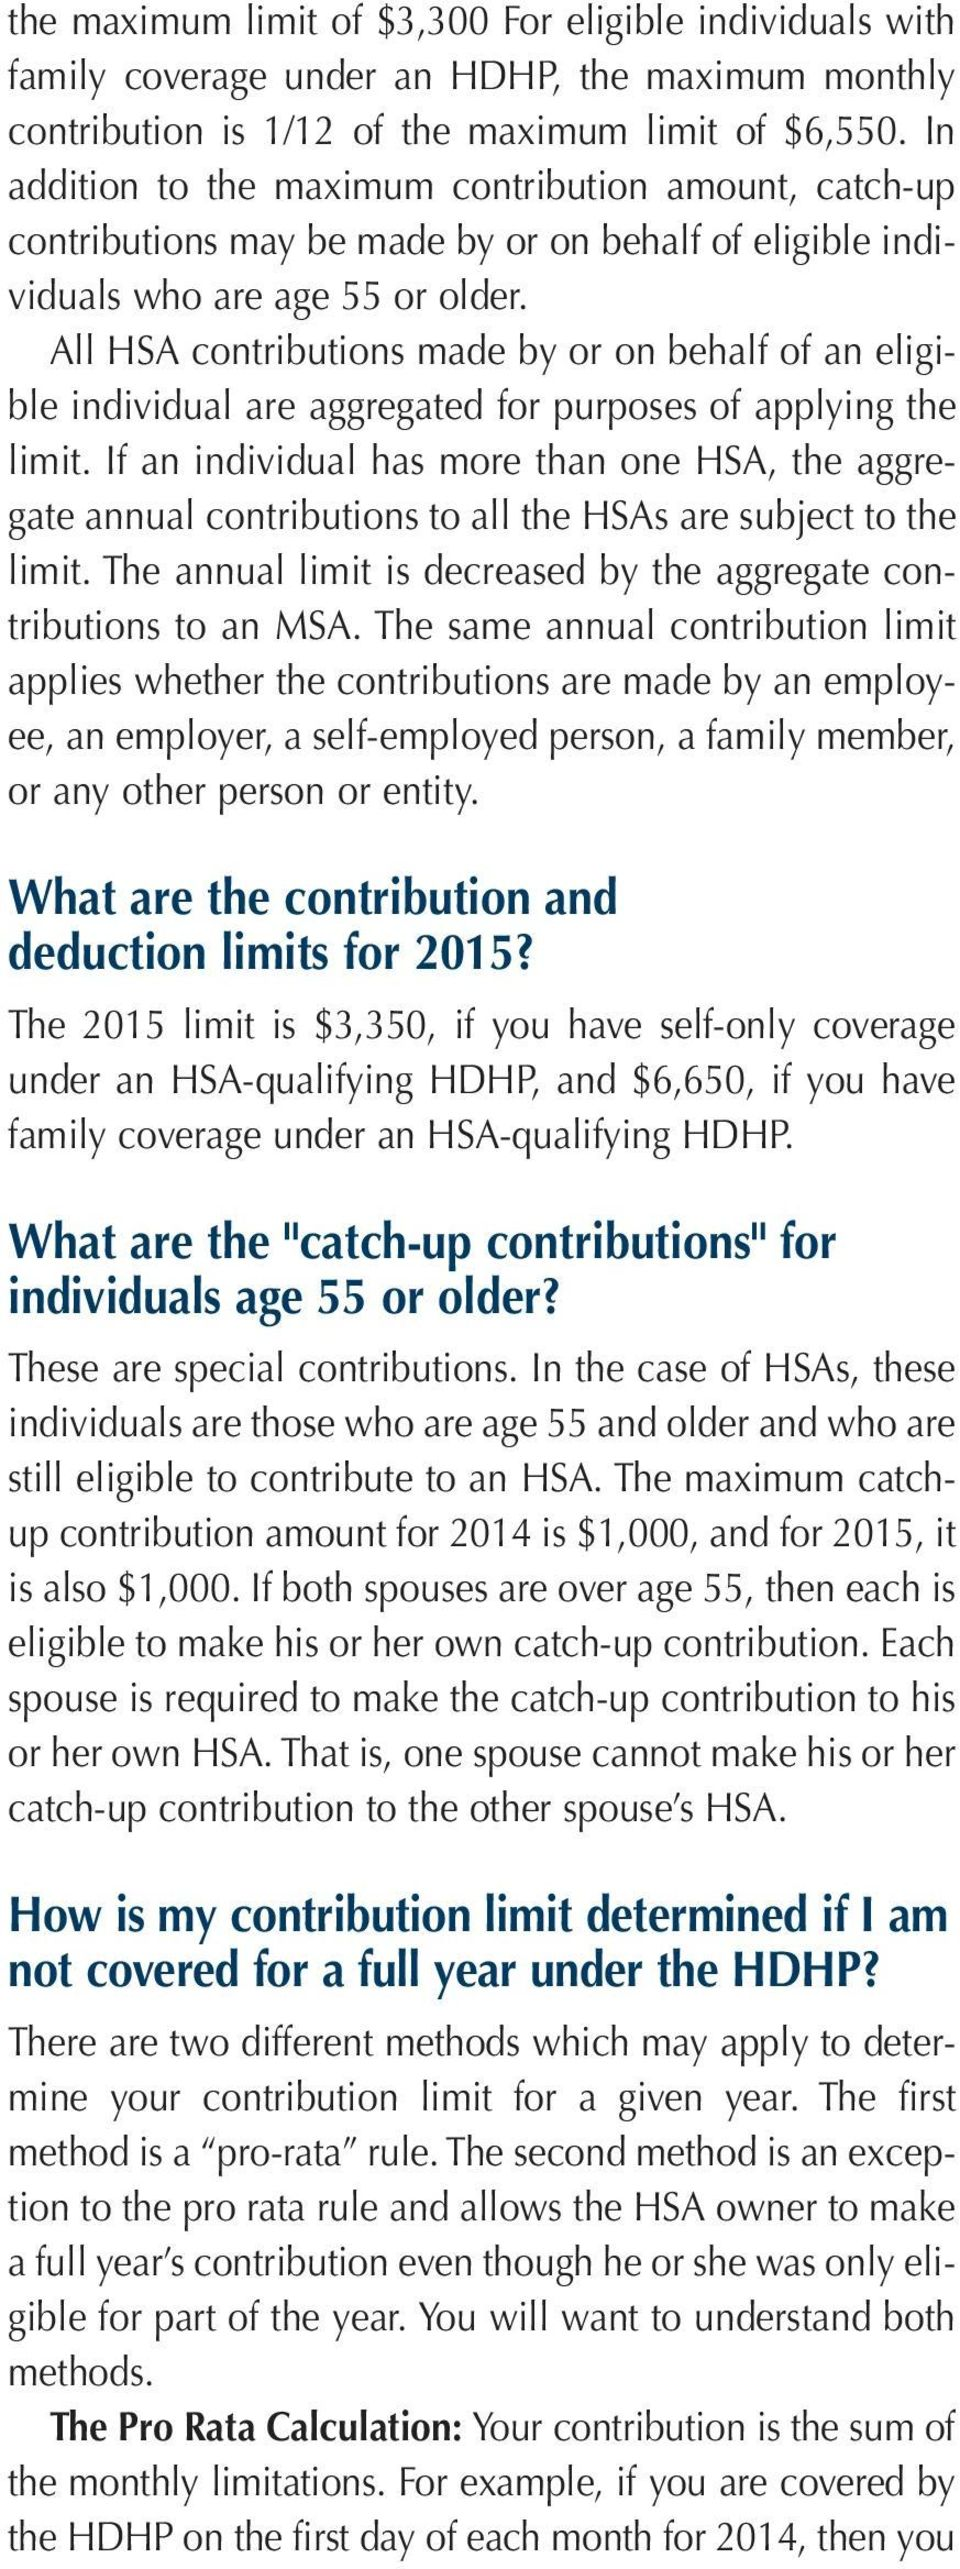 All HSA contributions made by or on behalf of an eligible individual are aggregated for purposes of applying the limit.